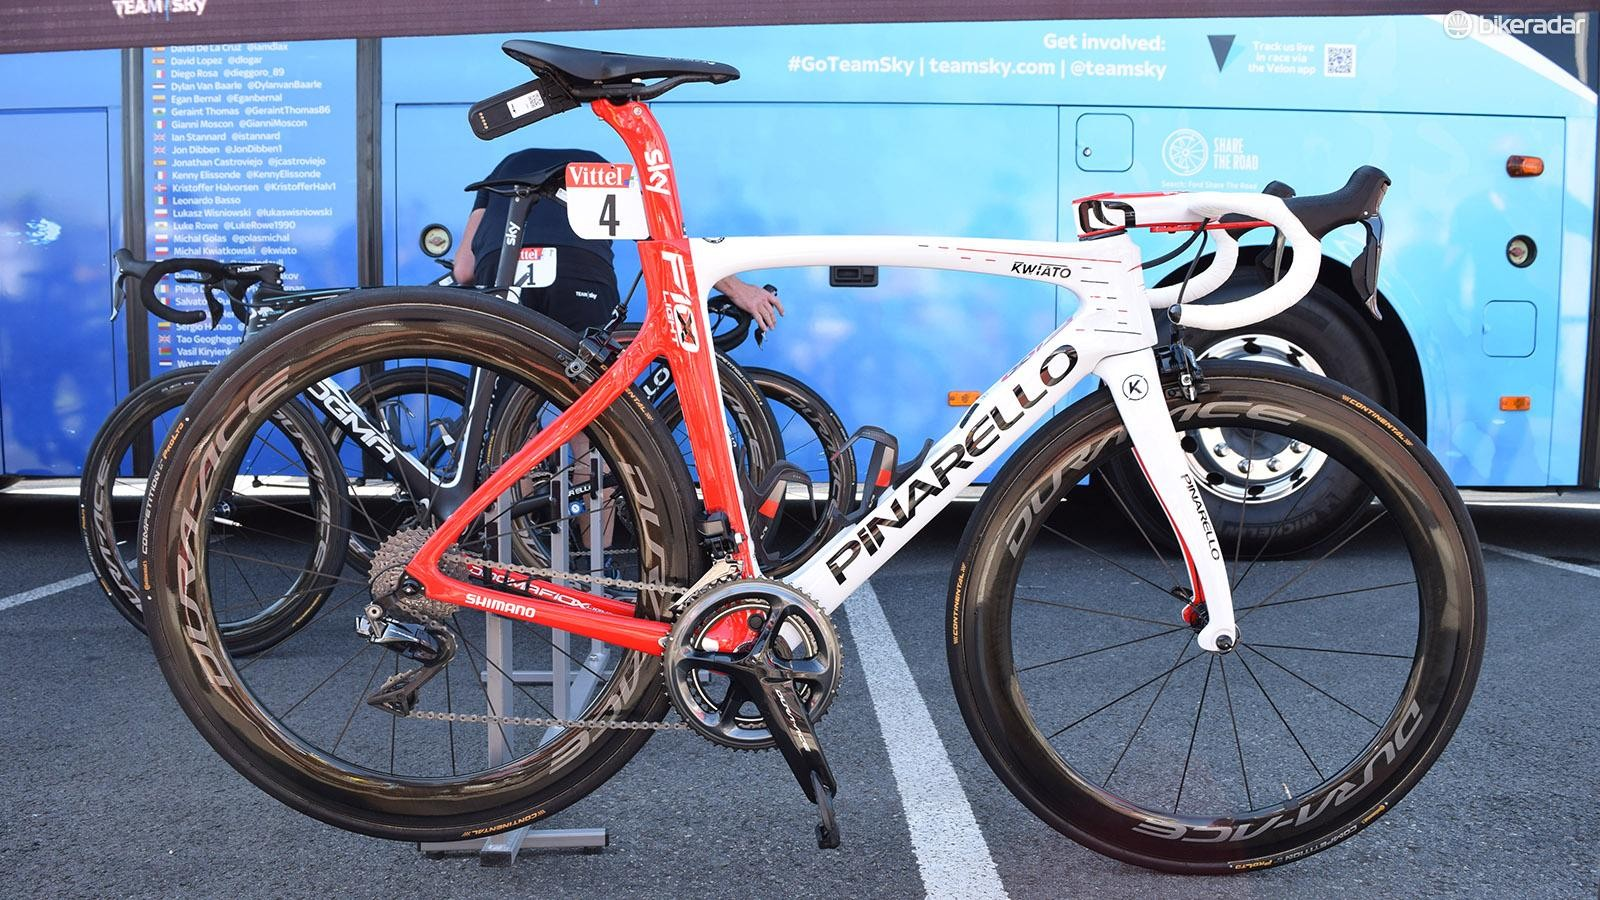 Michal Kwiatkowski's custom painted Pinarello Dogma F10 X-Light